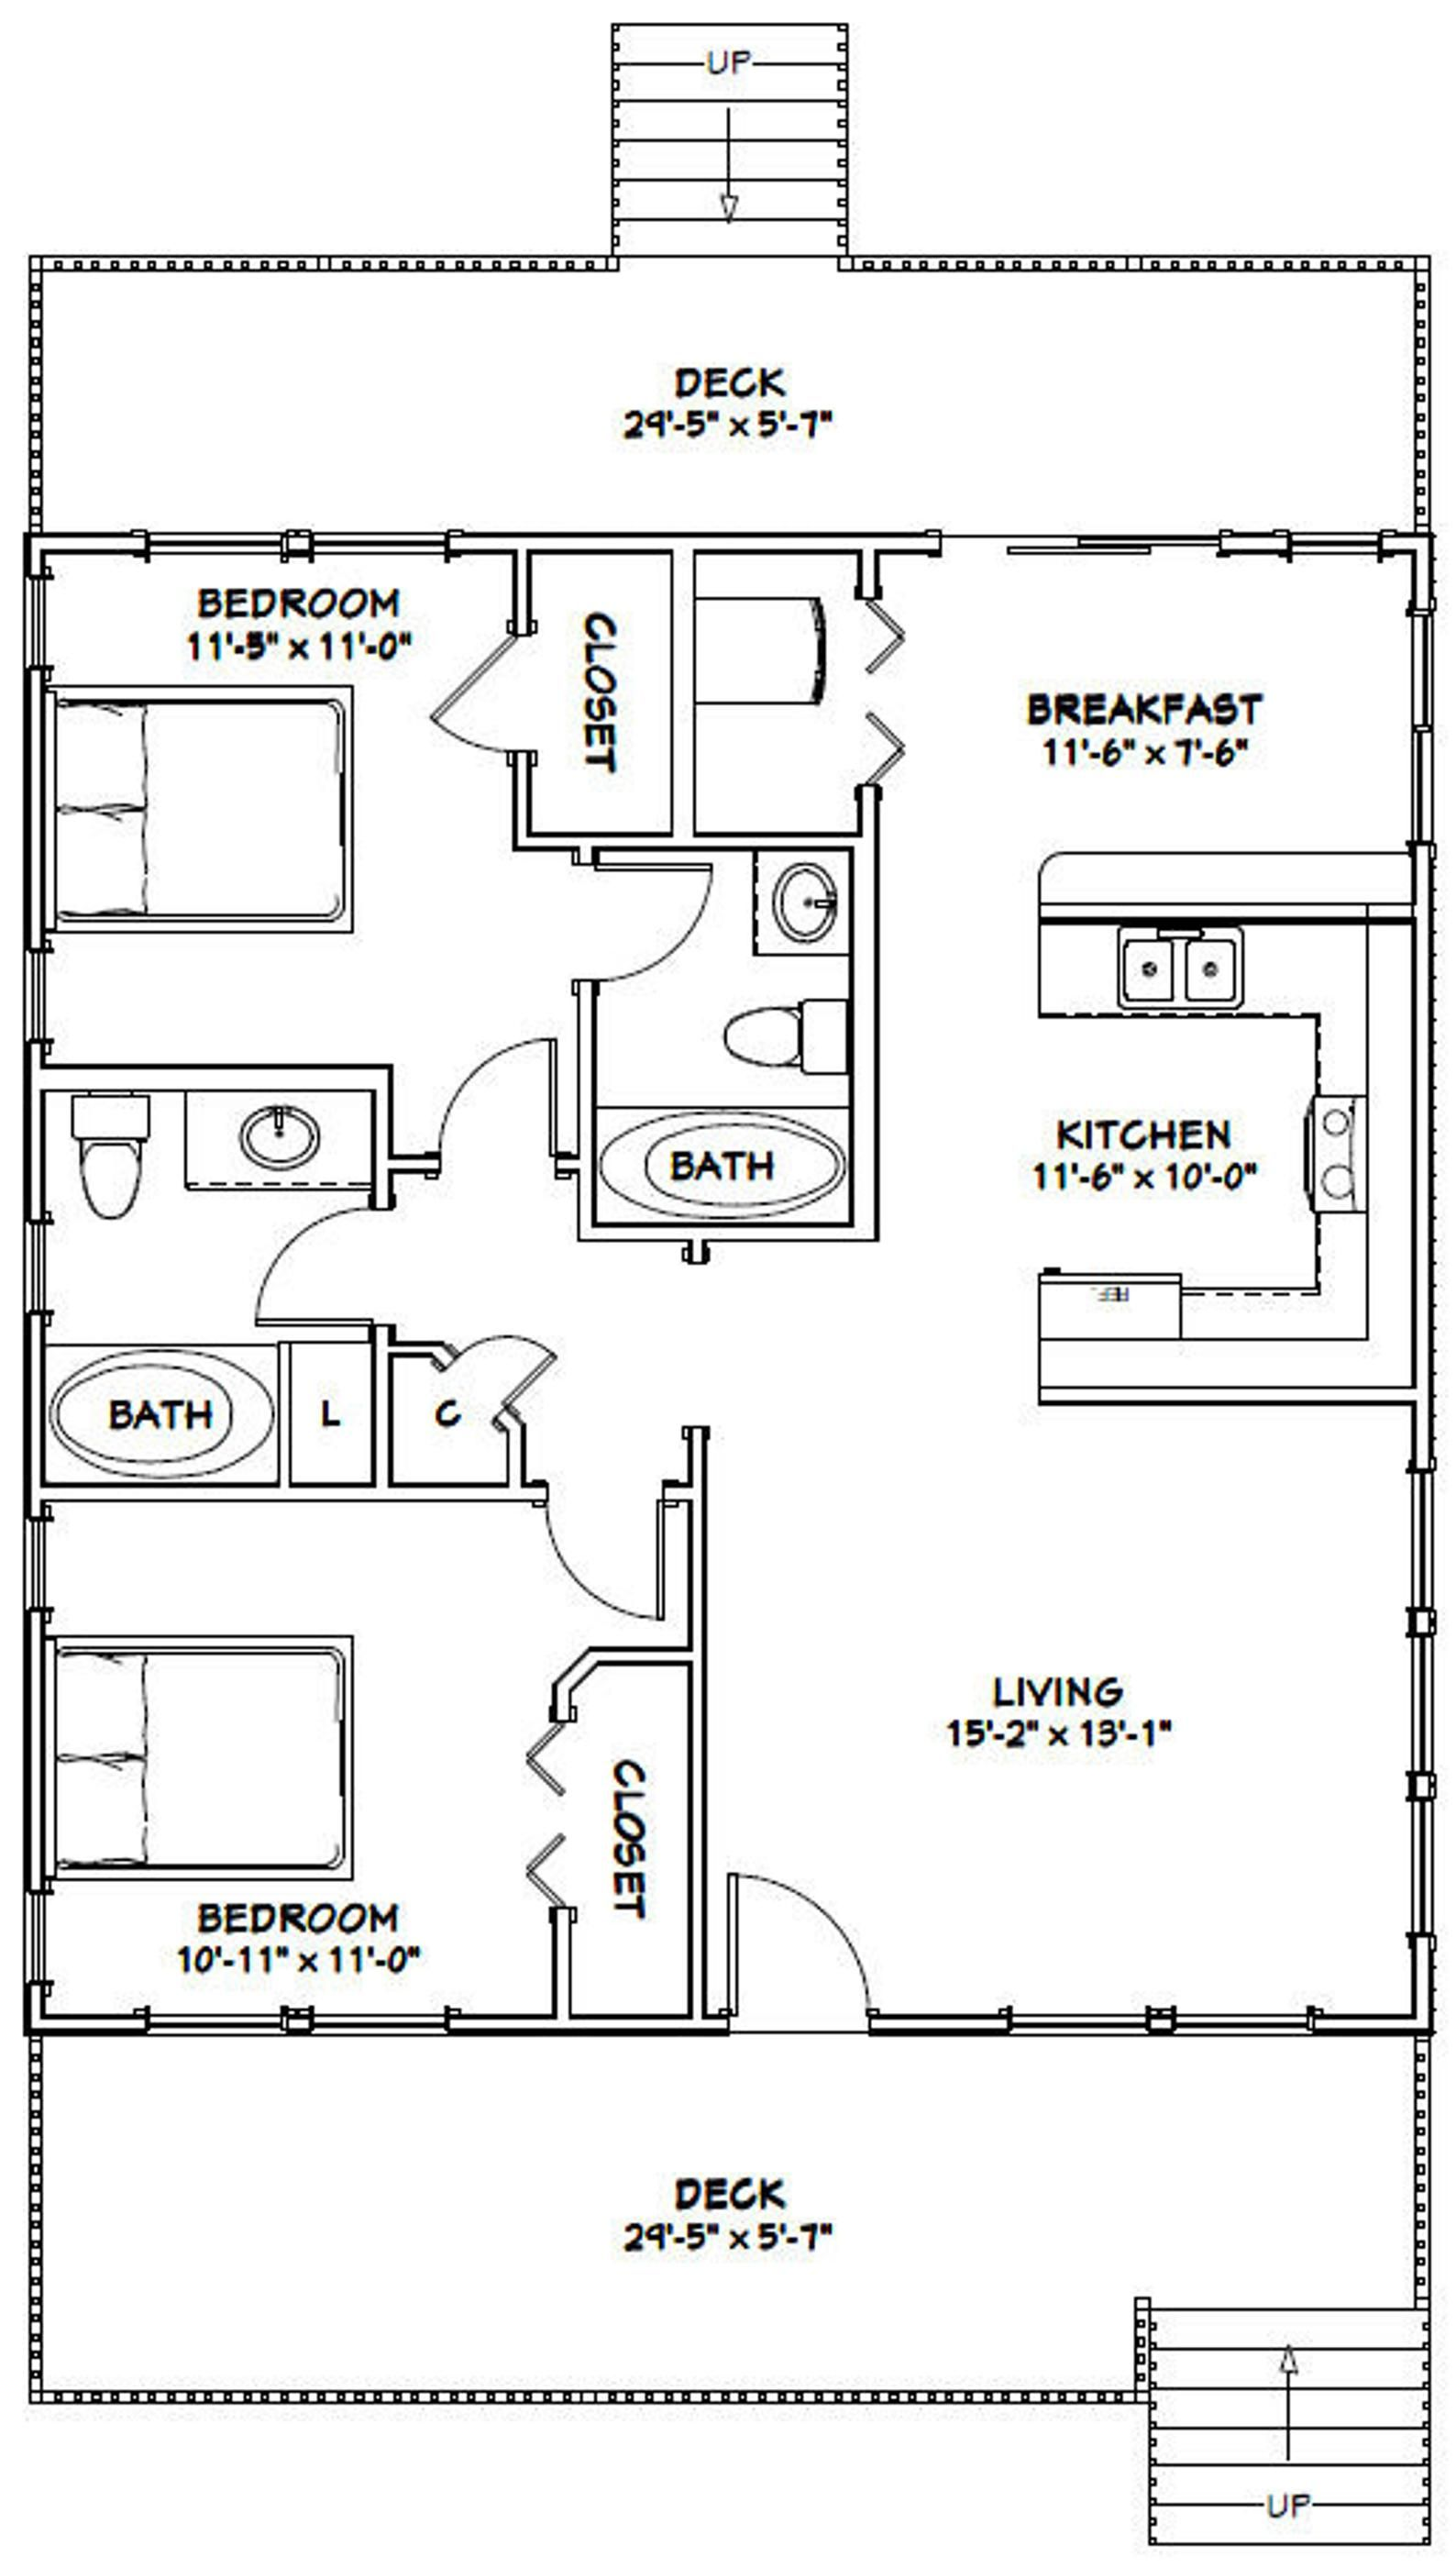 30x32 House 2 Bedroom 2 Bath 960 Sq Ft Pdf Floor Plan Etsy In 2020 Small House Floor Plans 1200 Sq Ft House House Floor Plans